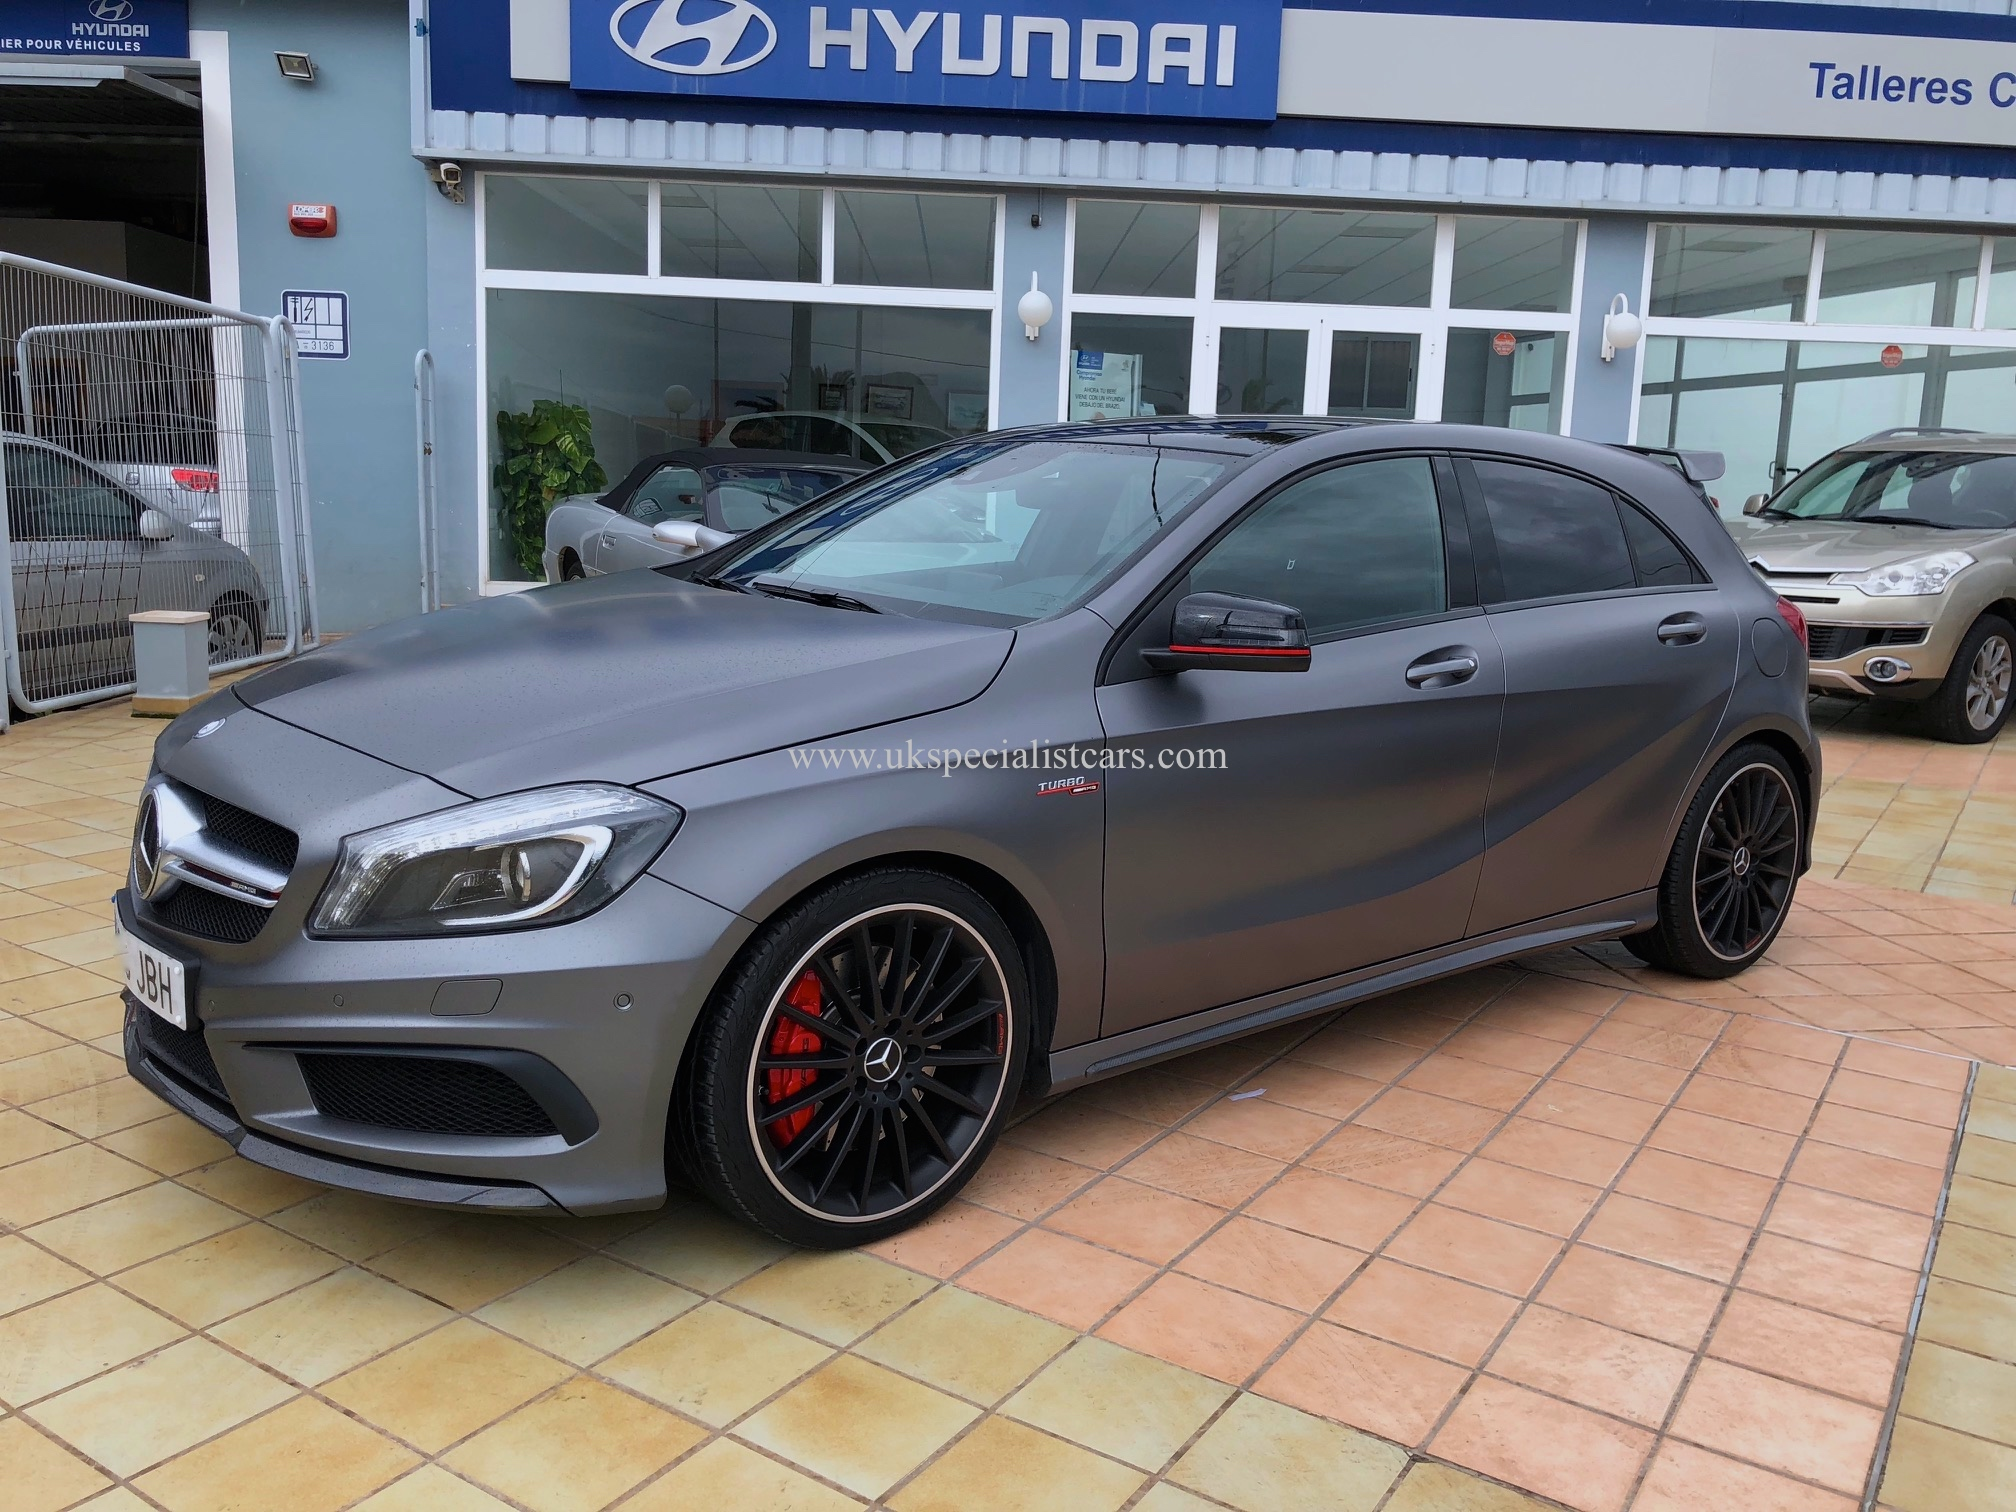 lhd mercedes benz a45 amg 440bhp lhd in spain. Black Bedroom Furniture Sets. Home Design Ideas